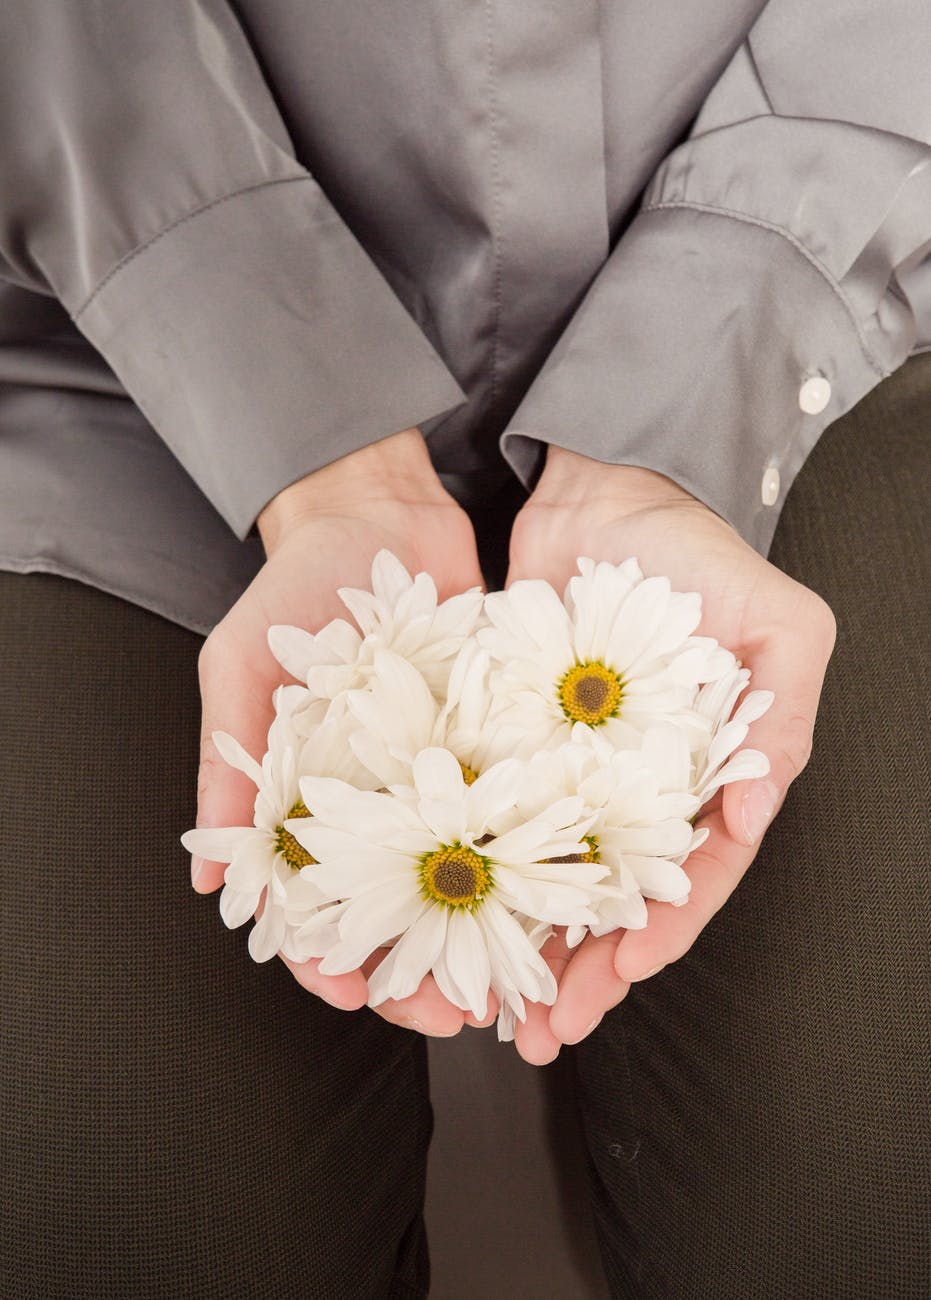 anonymous woman showing handful of fresh chamomiles